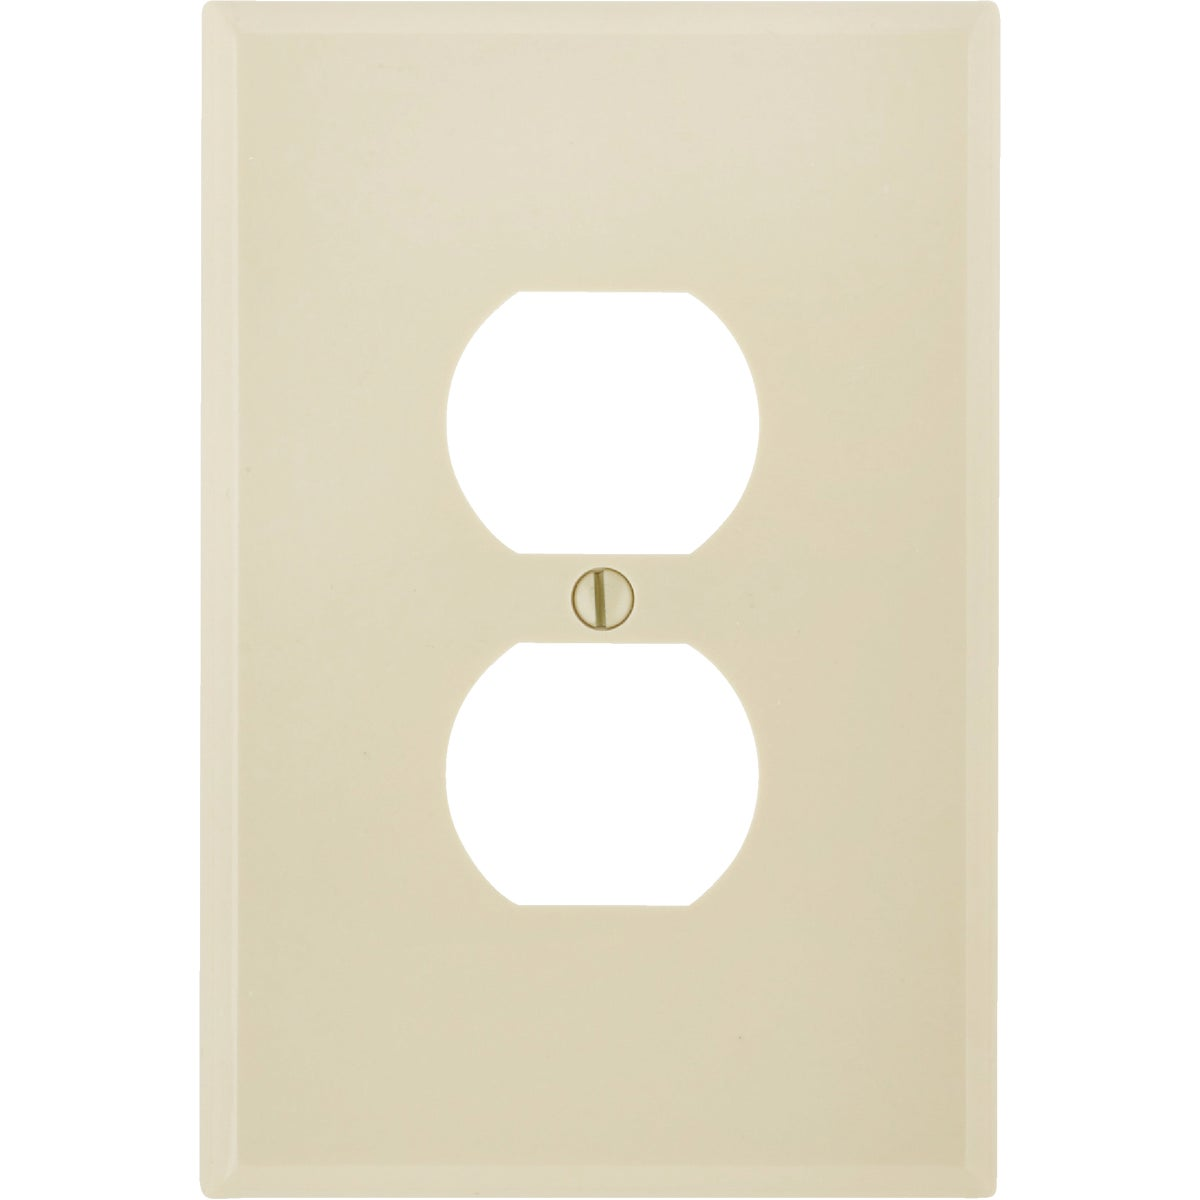 IV DUPLEX WALL PLATE - 86103I by Leviton Mfg Co